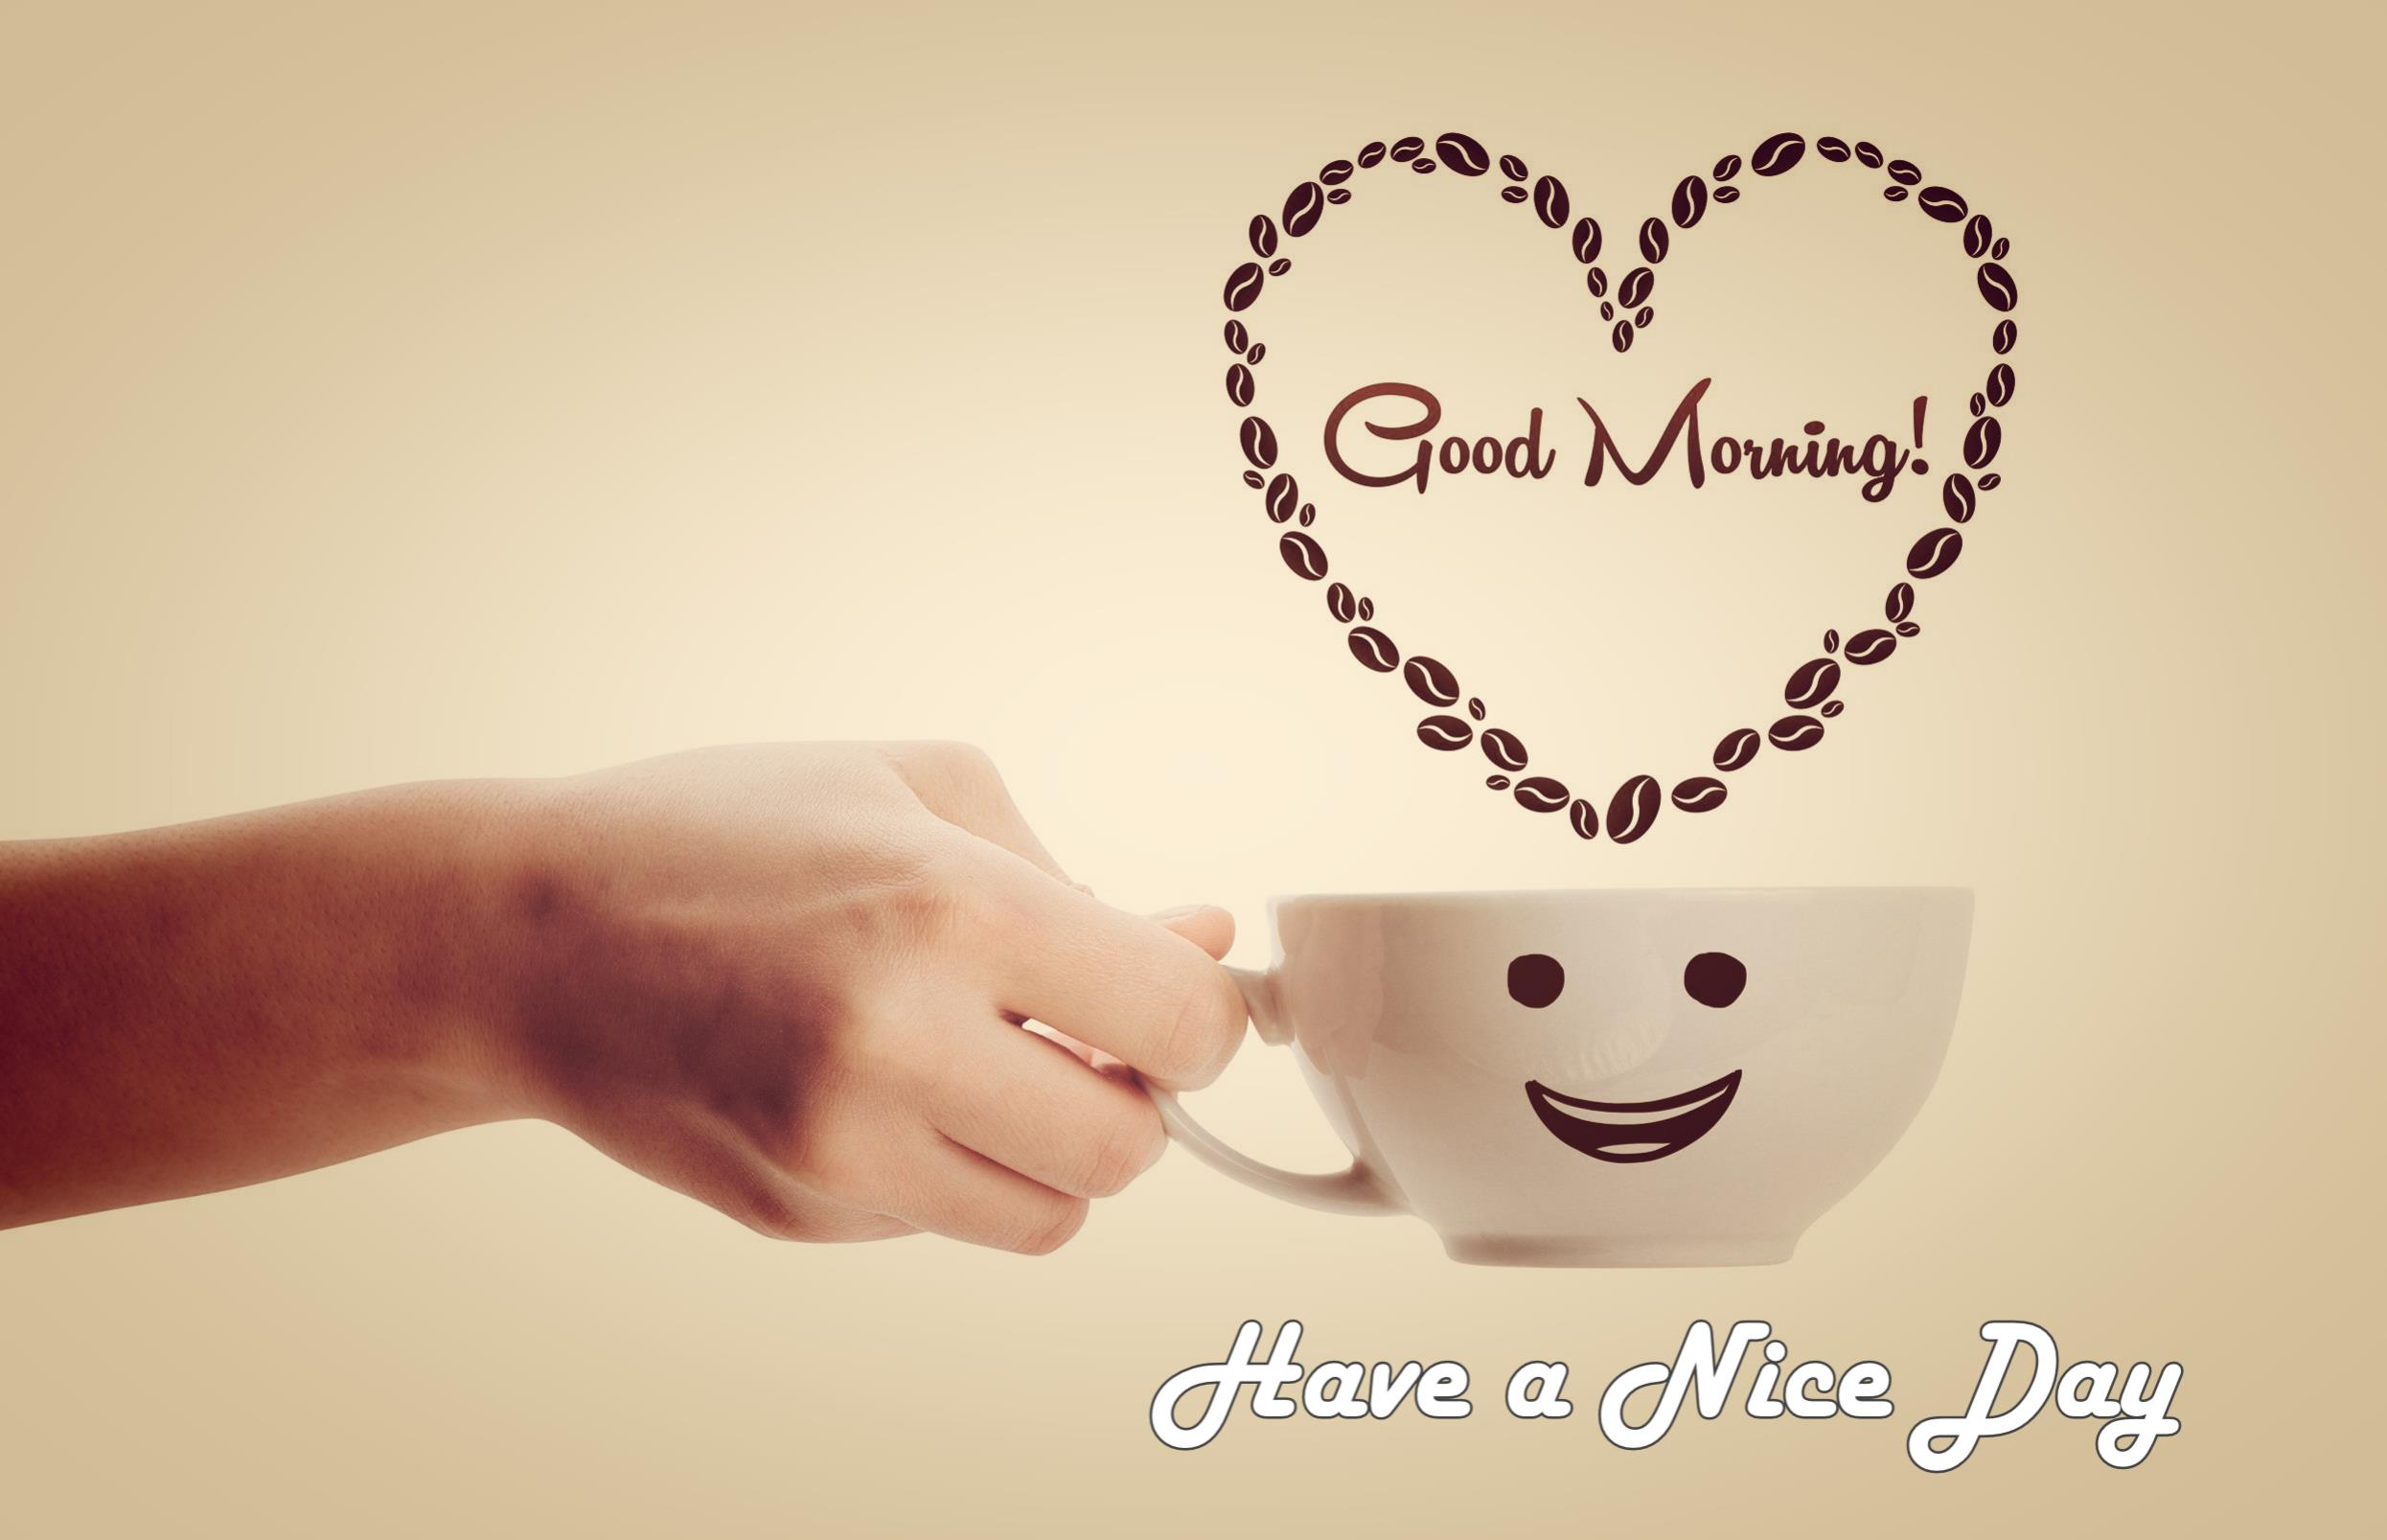 Good Morning Have a Nice Day with Coffee Hd Wallpaper